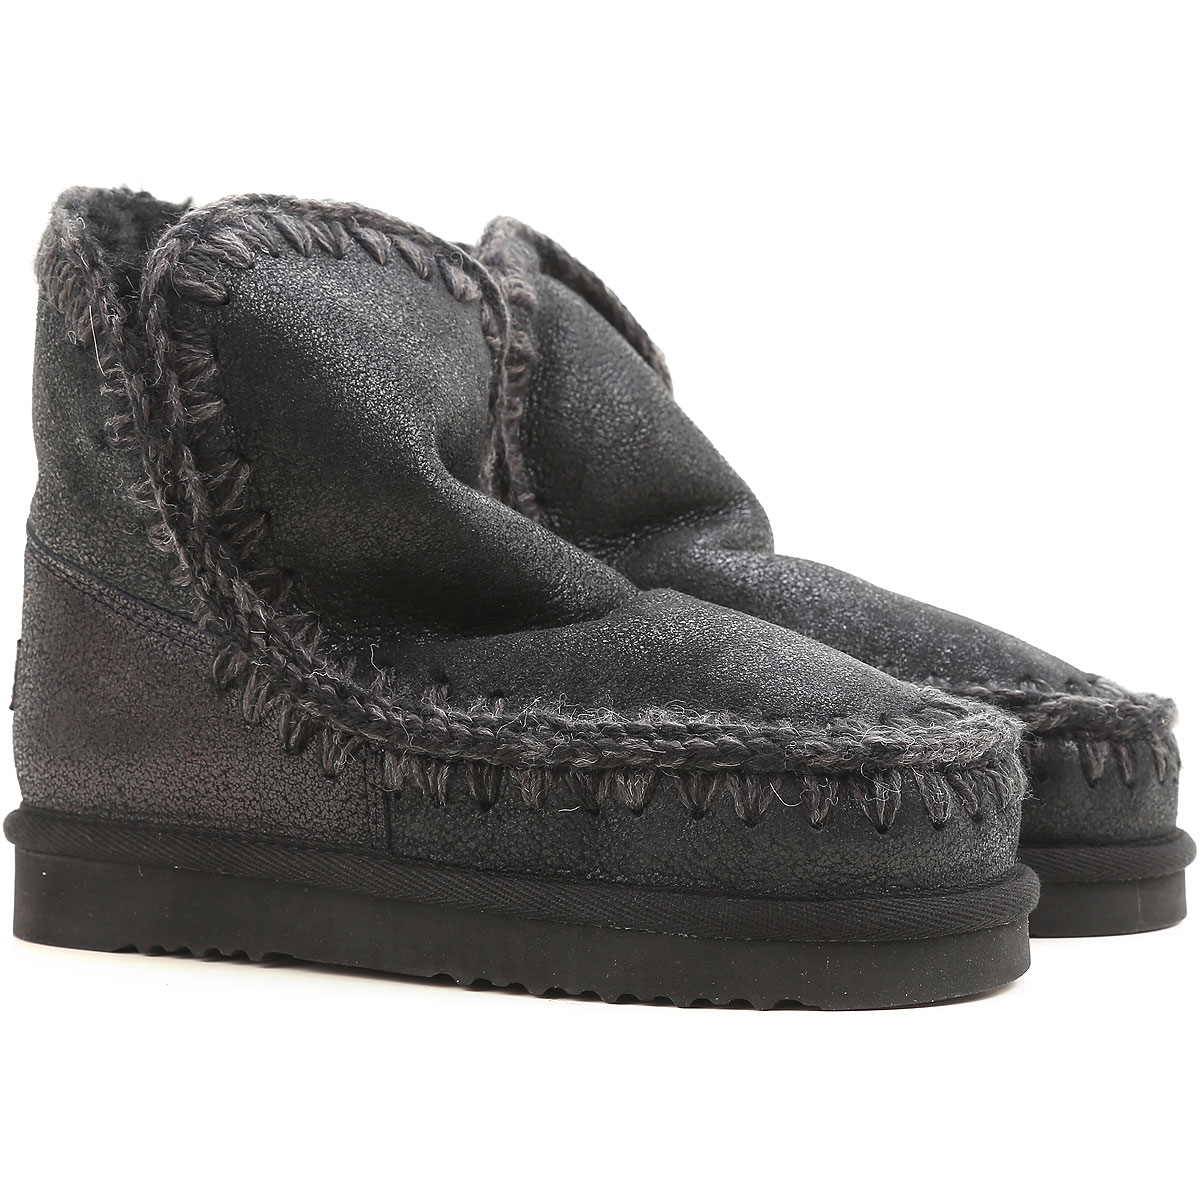 Mou Boots for Women, Booties On Sale, Black, Leather, 2019, EUR 36 - UK 3 - USA 5.5 EUR 37 - UK 4 - USA 6.5 EUR 38 - UK 5 - USA 7.5